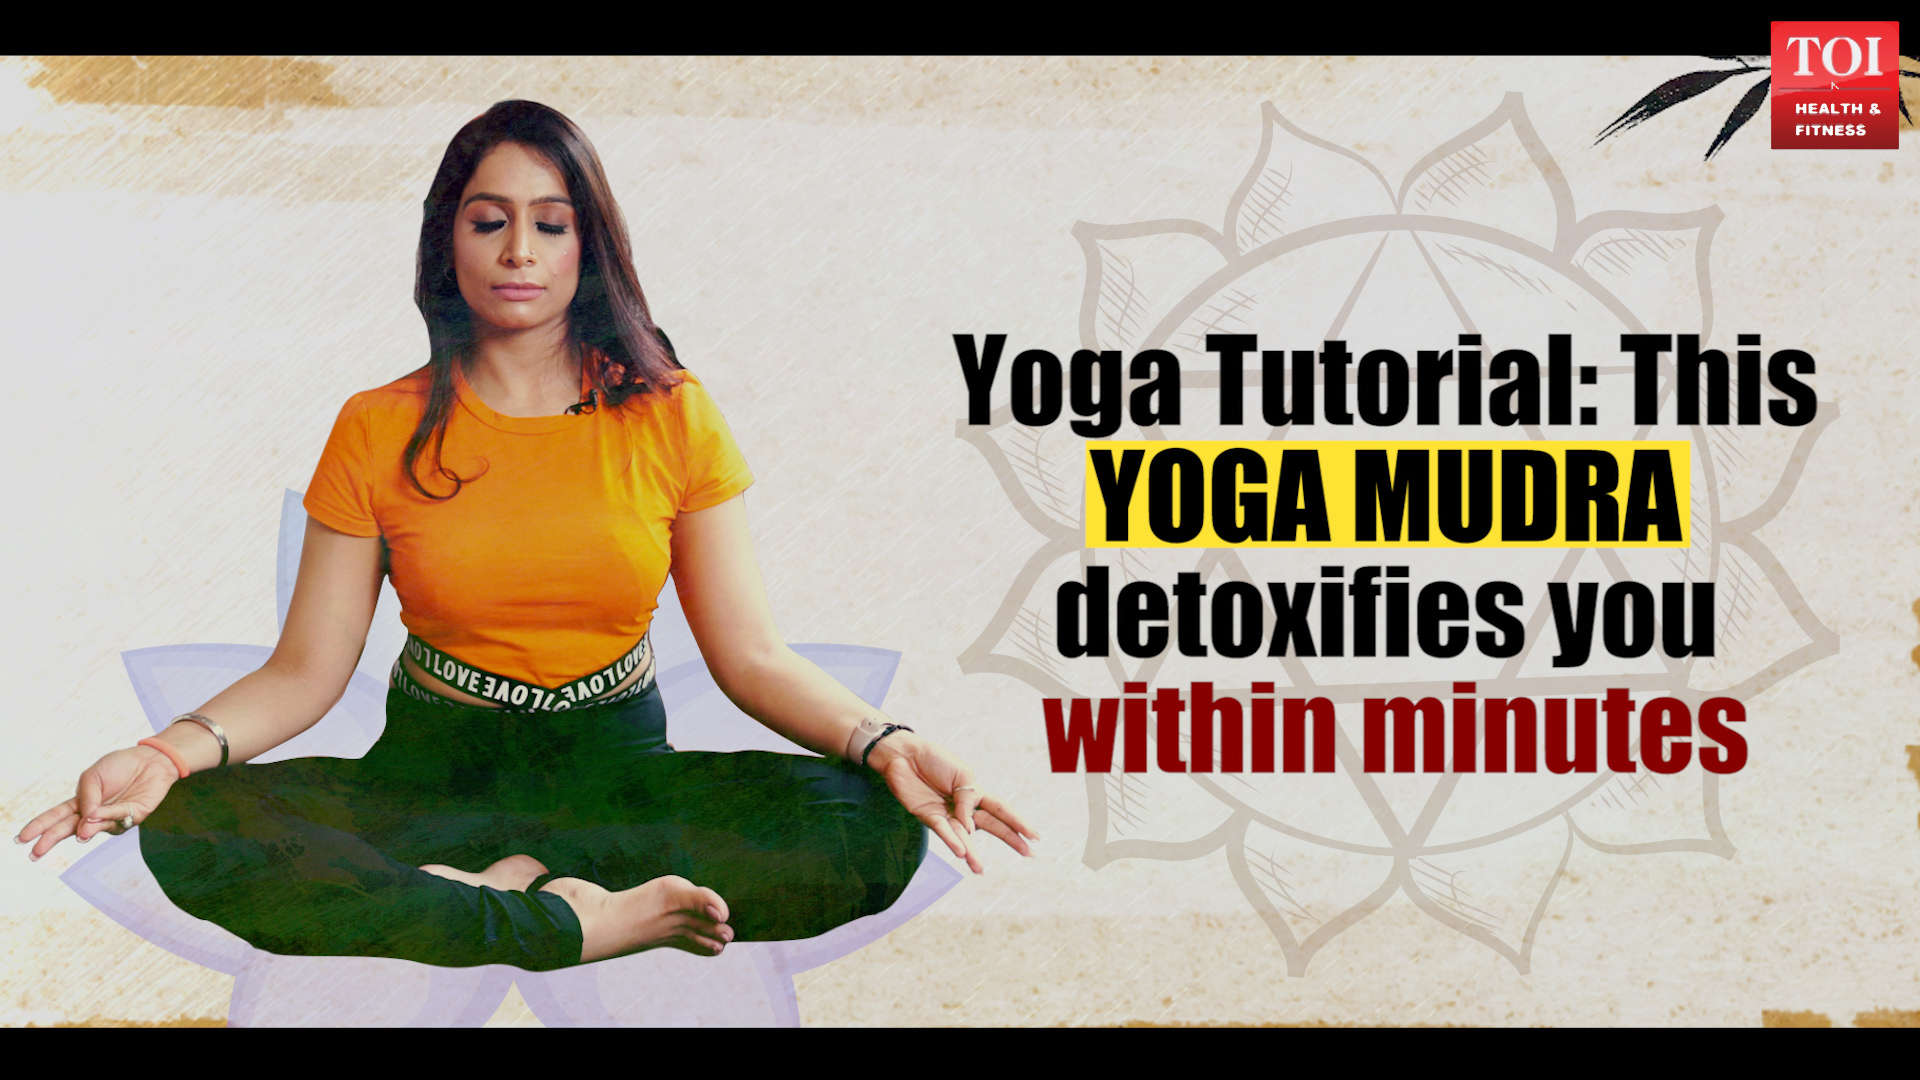 yoga-tutorial-this-yoga-mudra-detoxifies-you-within-minutes